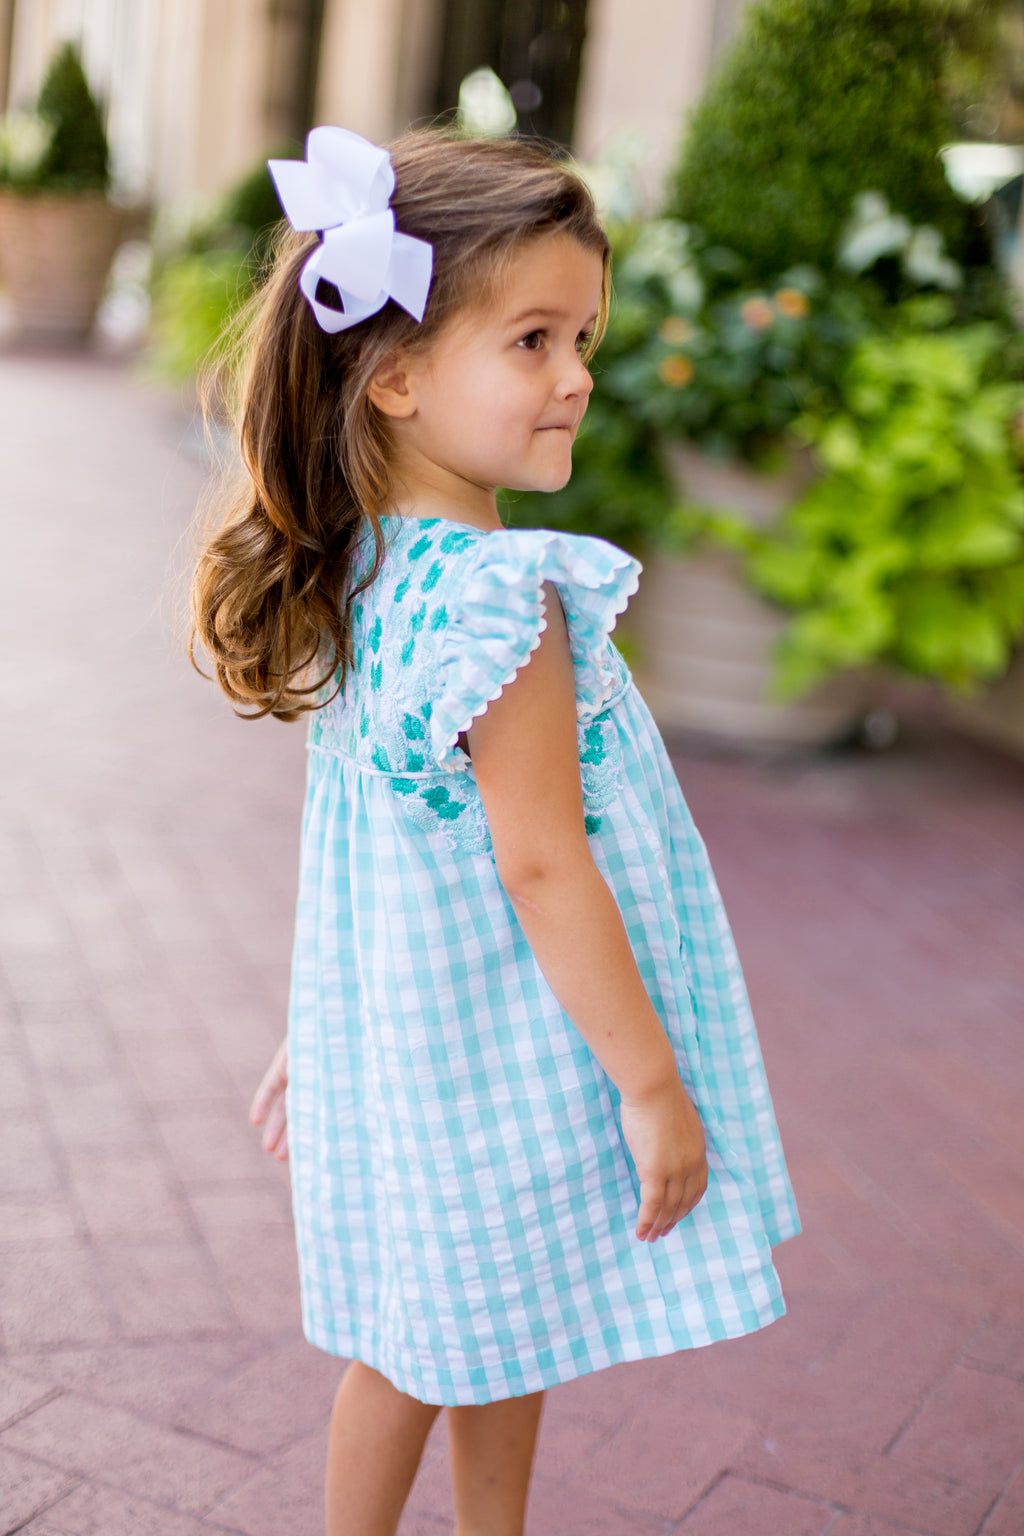 The Savannah Baby Dress